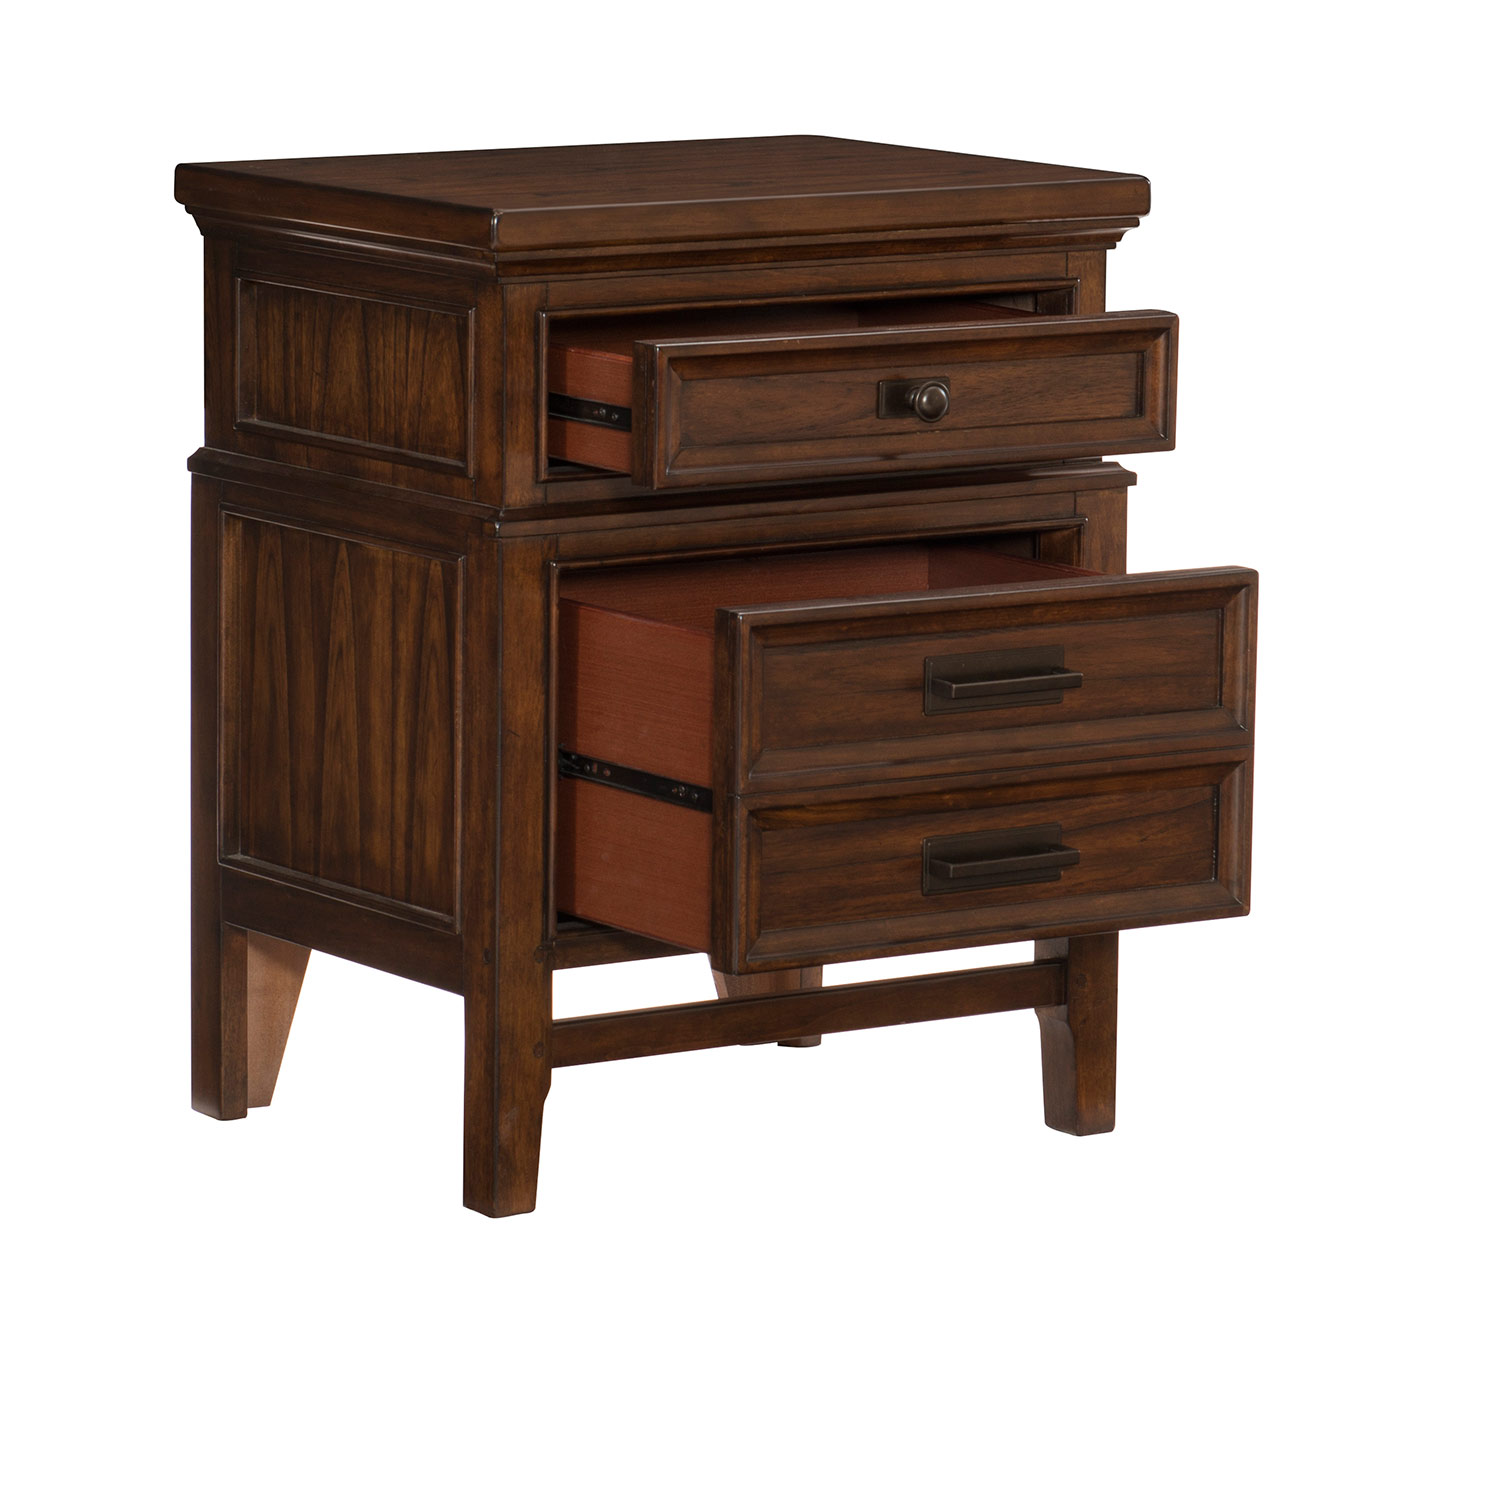 Homelegance Frazier Park Night Stand - Brown Cherry